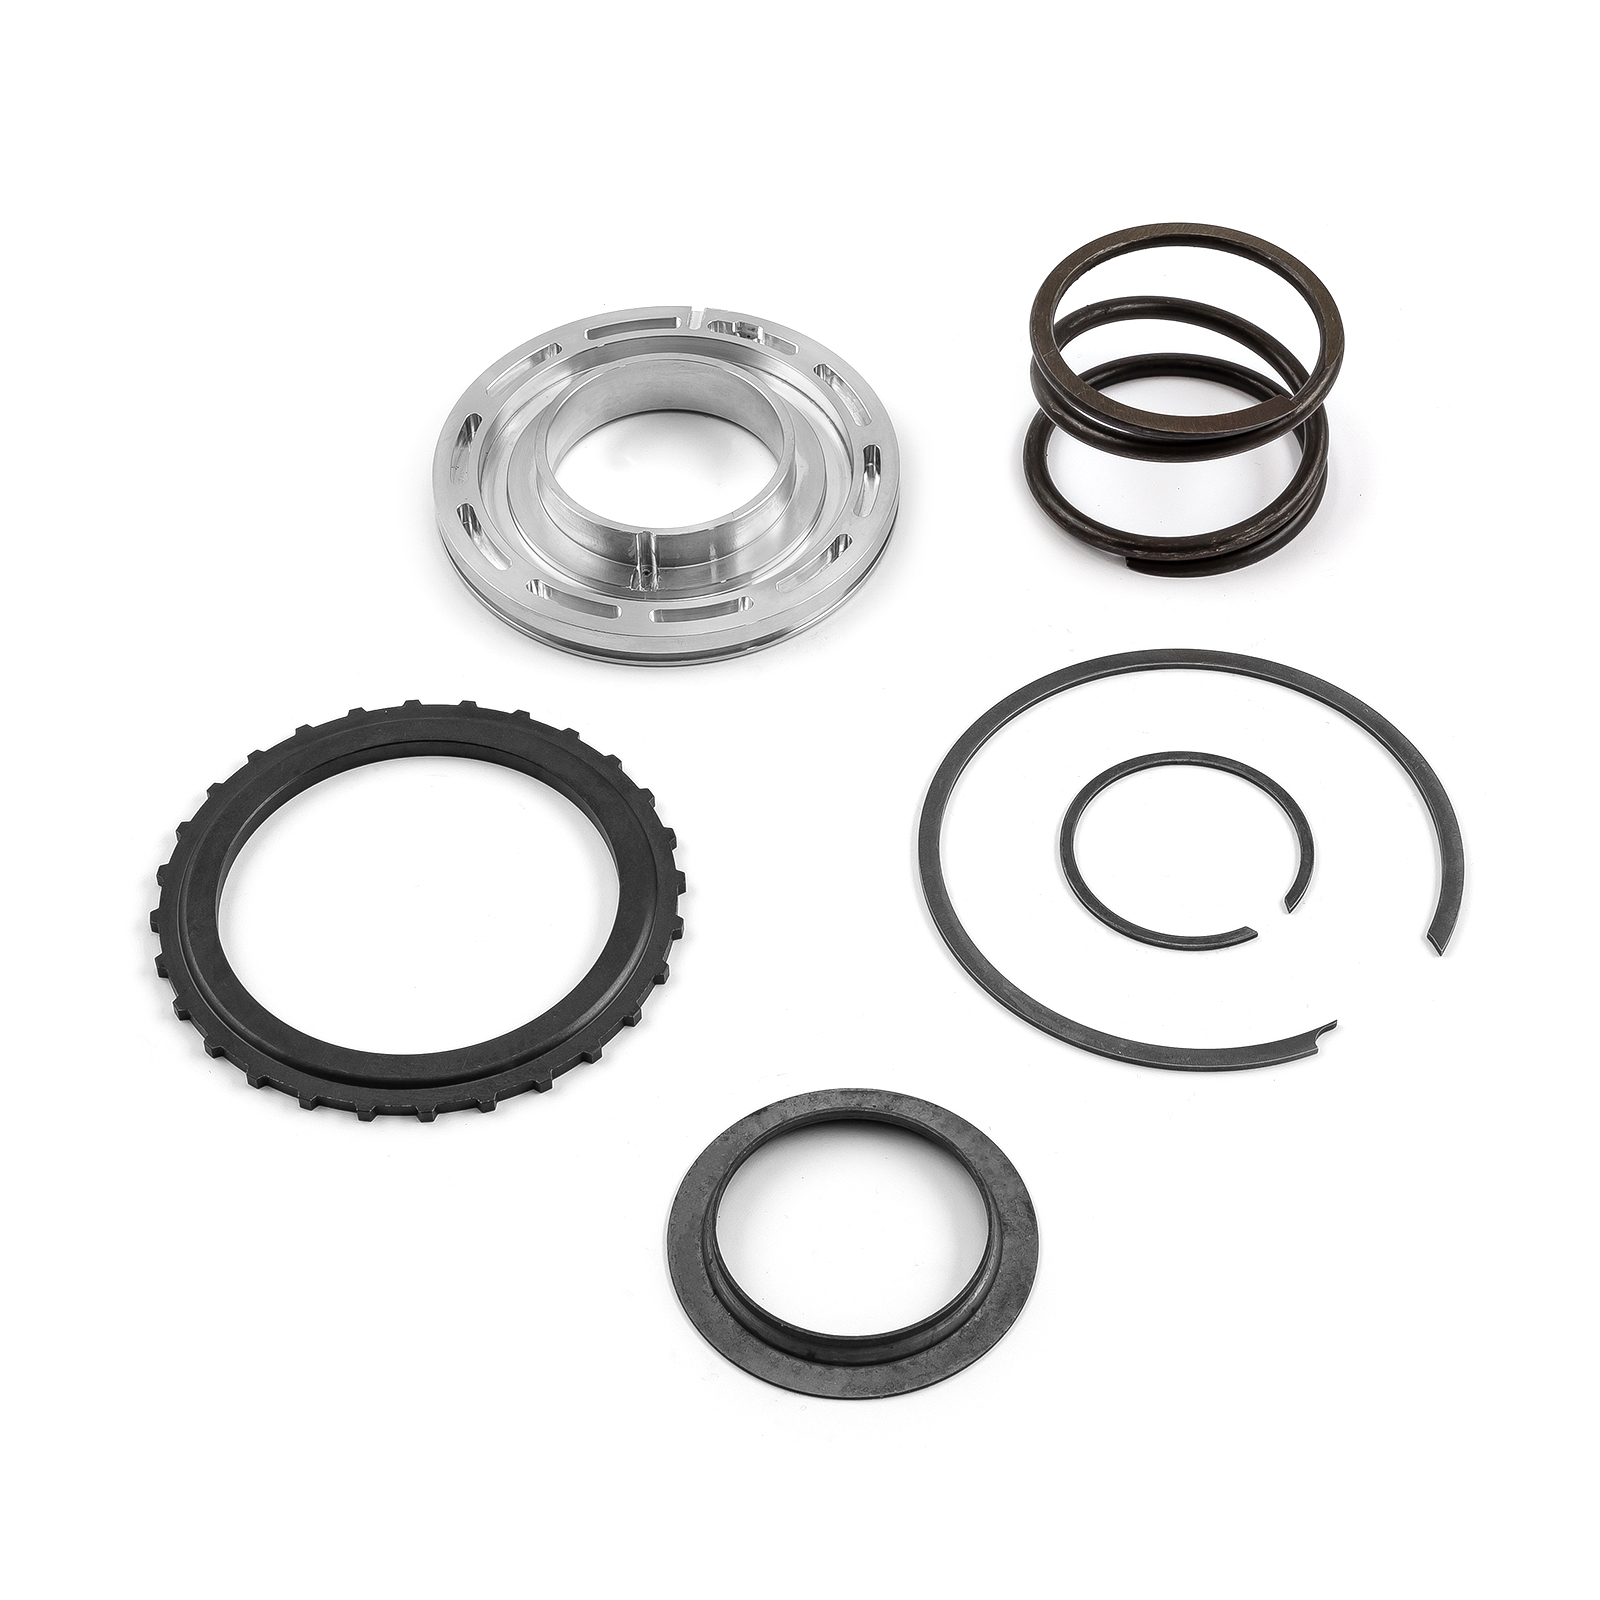 PCE® PCE612.1014 Ford C4 Direct Clutch Piston with Return Spring and Retainer Kit